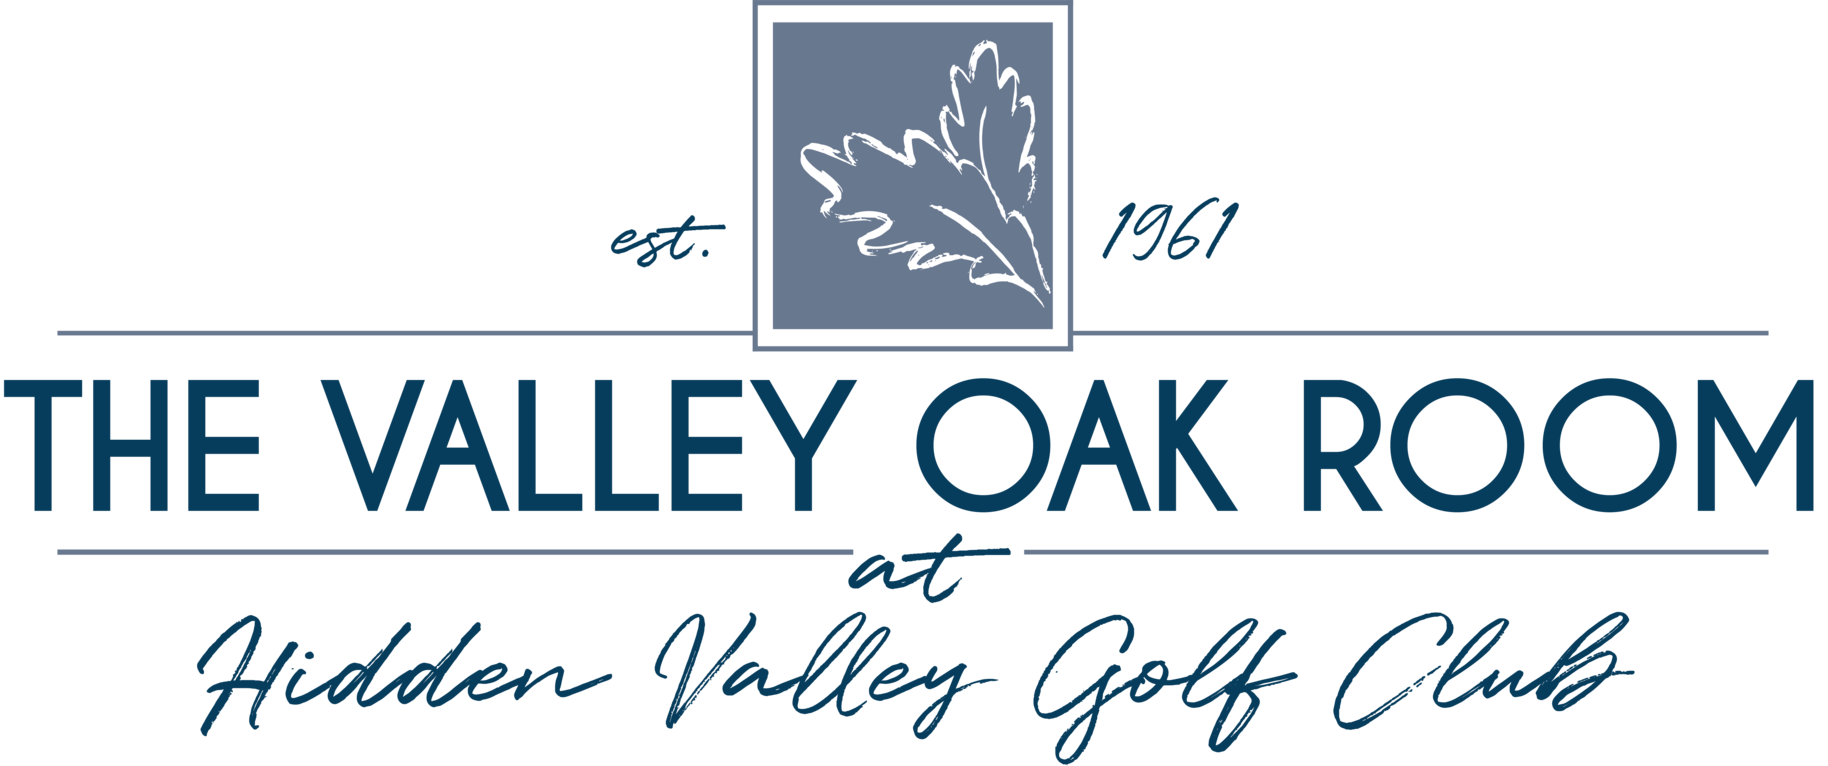 The Valley Oak Room